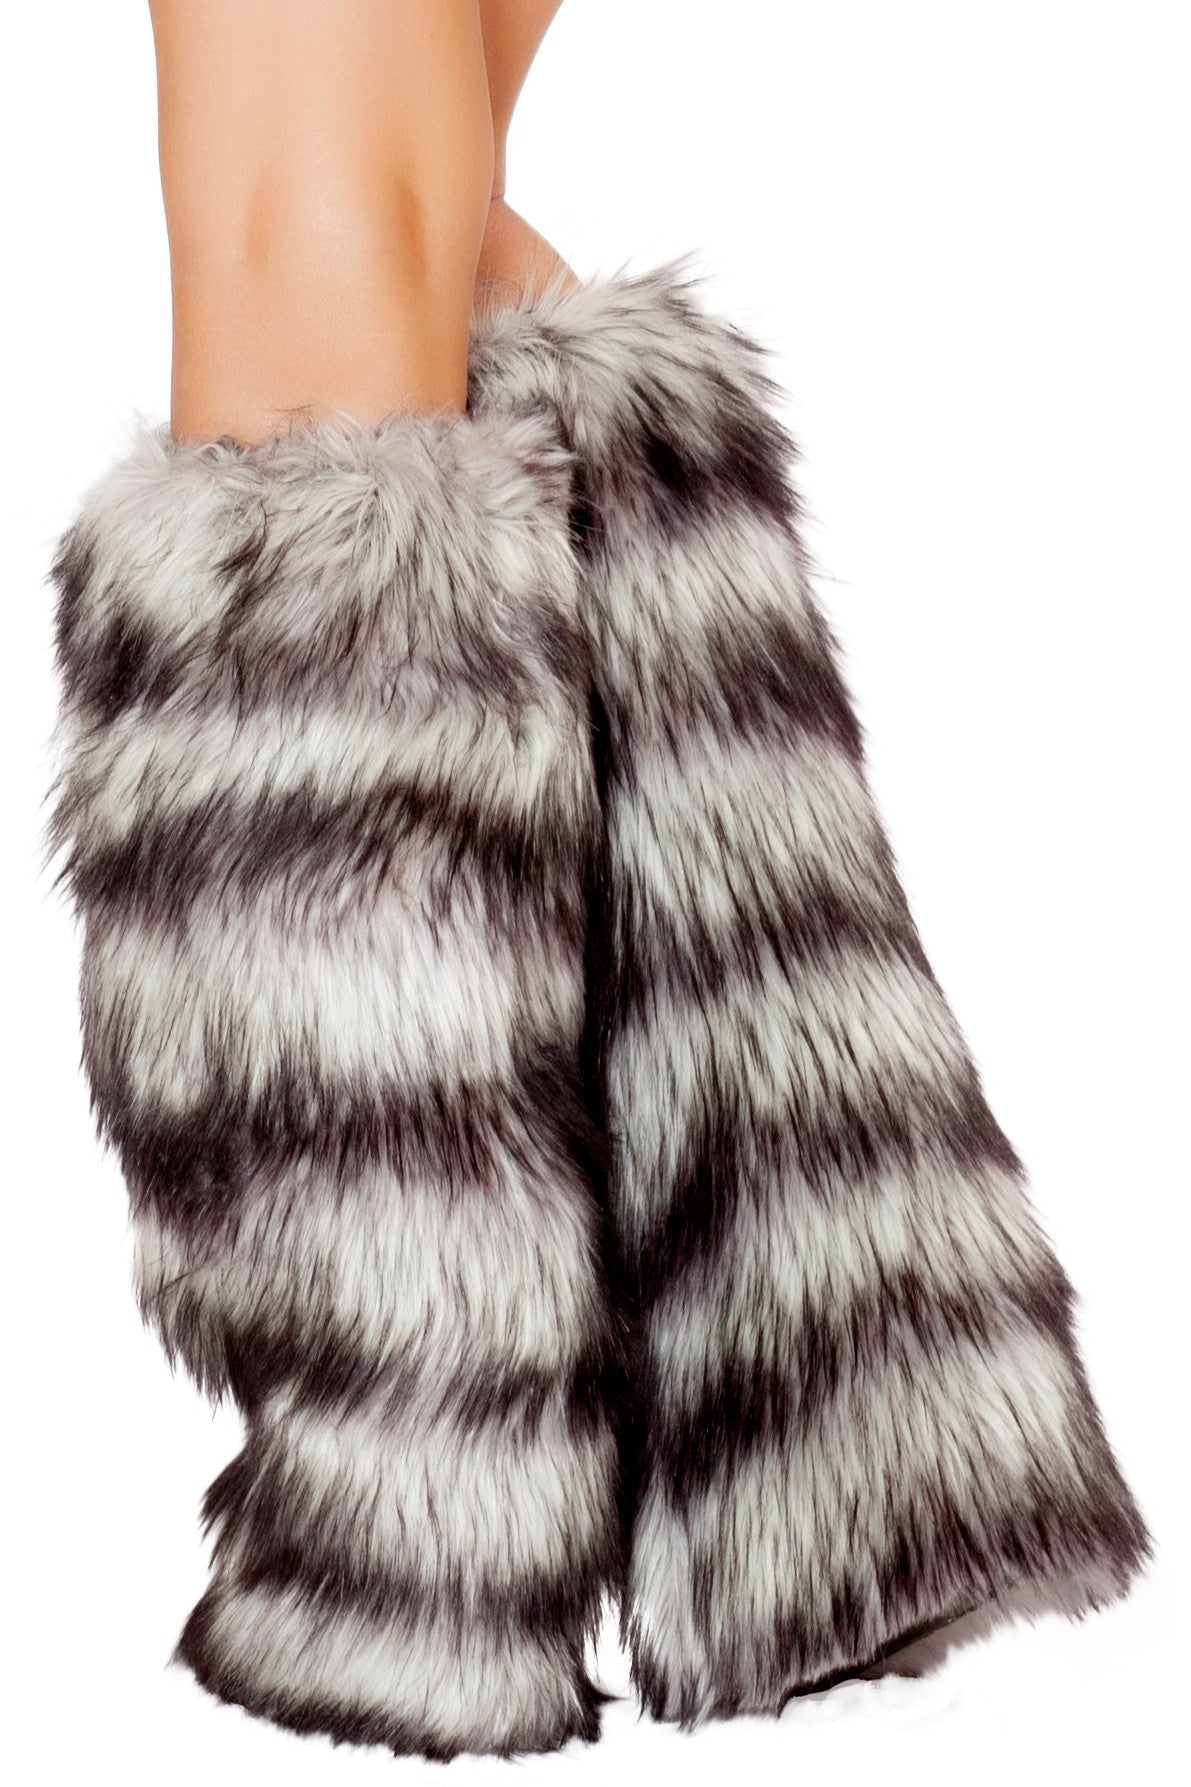 Striped Fur Leg Warmers